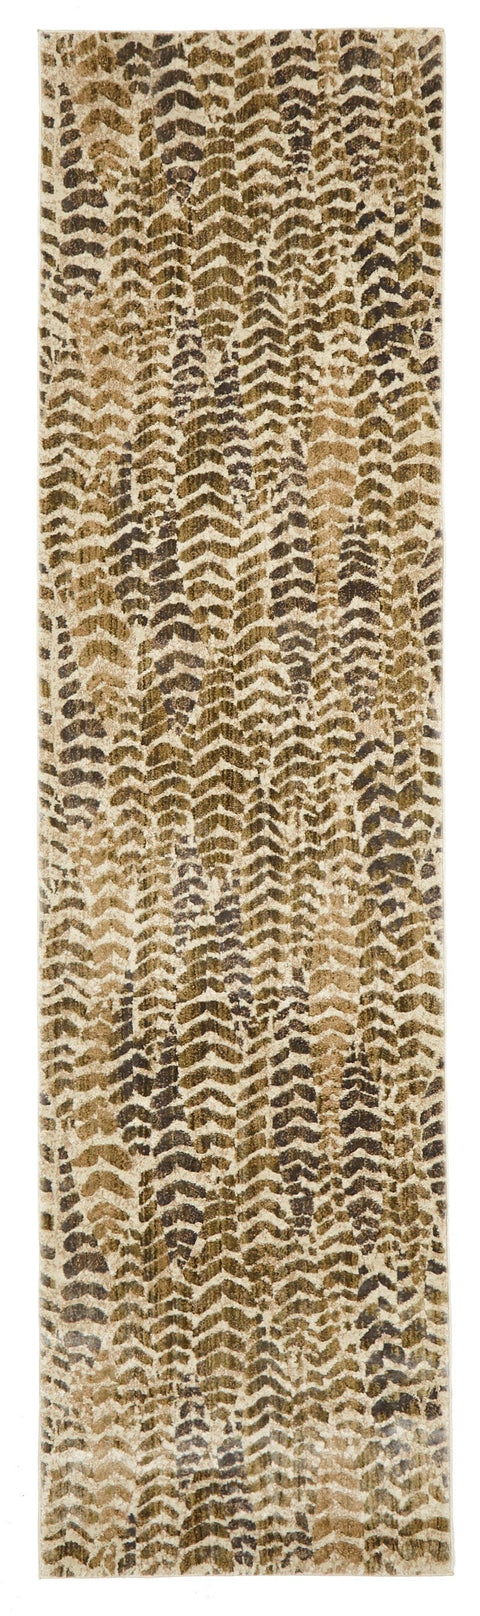 Dibaya Abstract Runner Rug